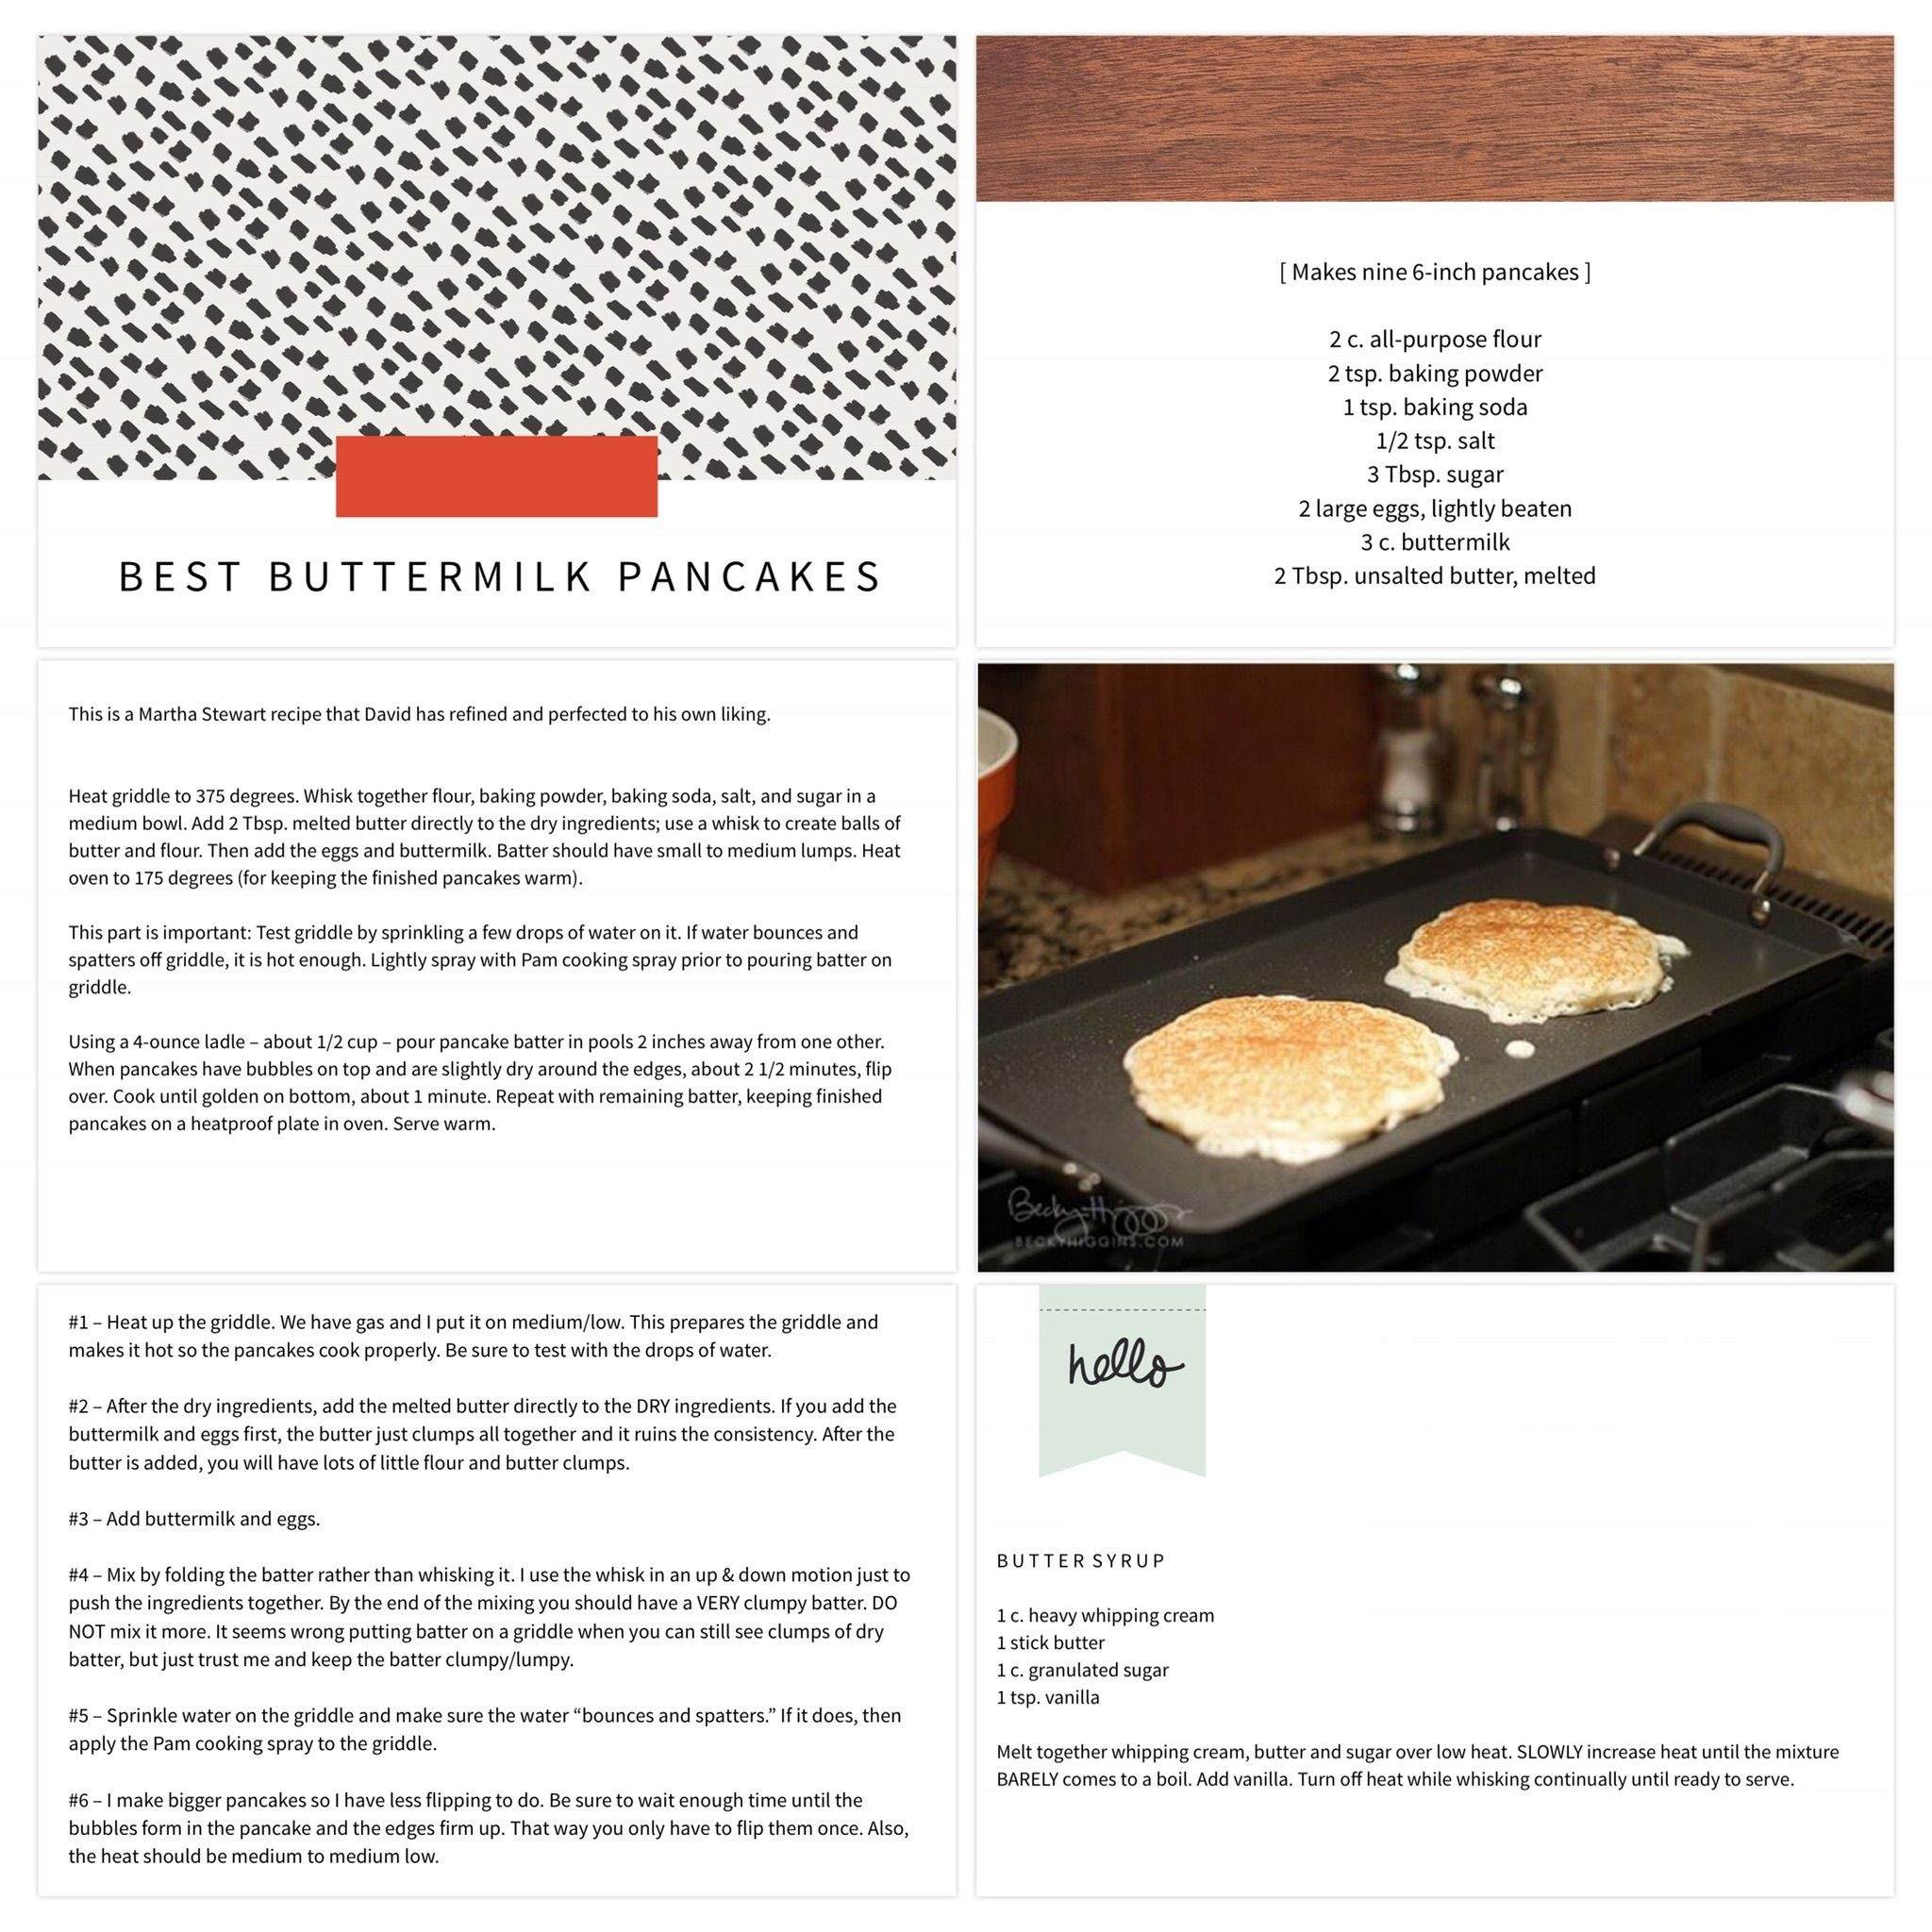 The Best Buttermilk Pancakes Recipe Page Made Using The Project Life App By Becky Higgins Recipes Pancake Recipe Buttermilk Buttermilk Pancakes